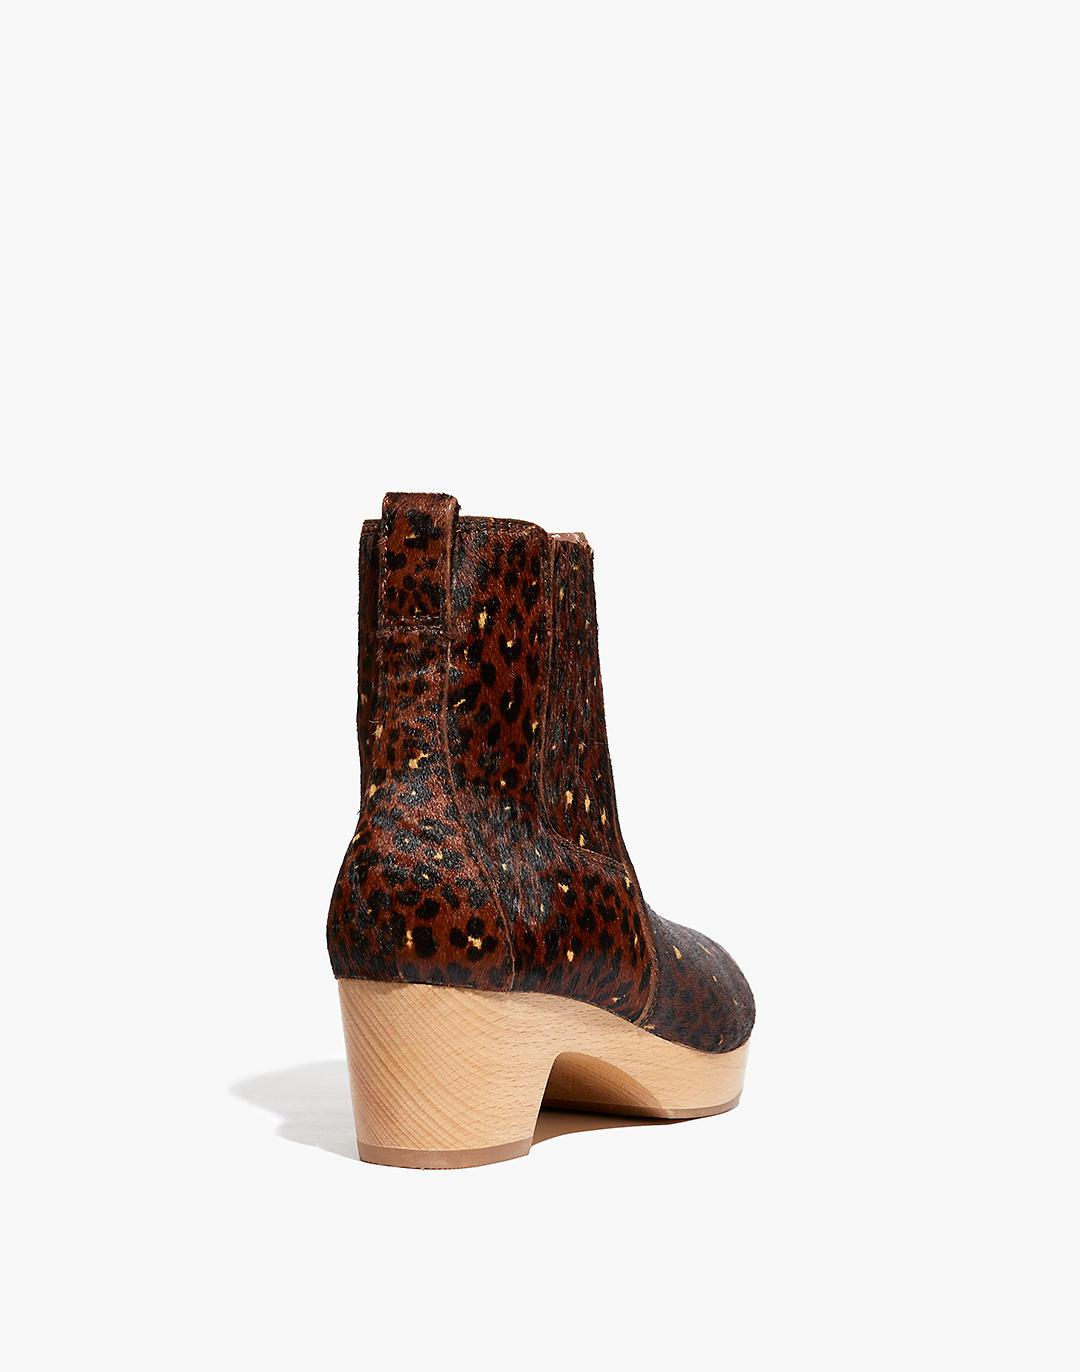 The Clog Boot in Painted Leopard Calf Hair 2